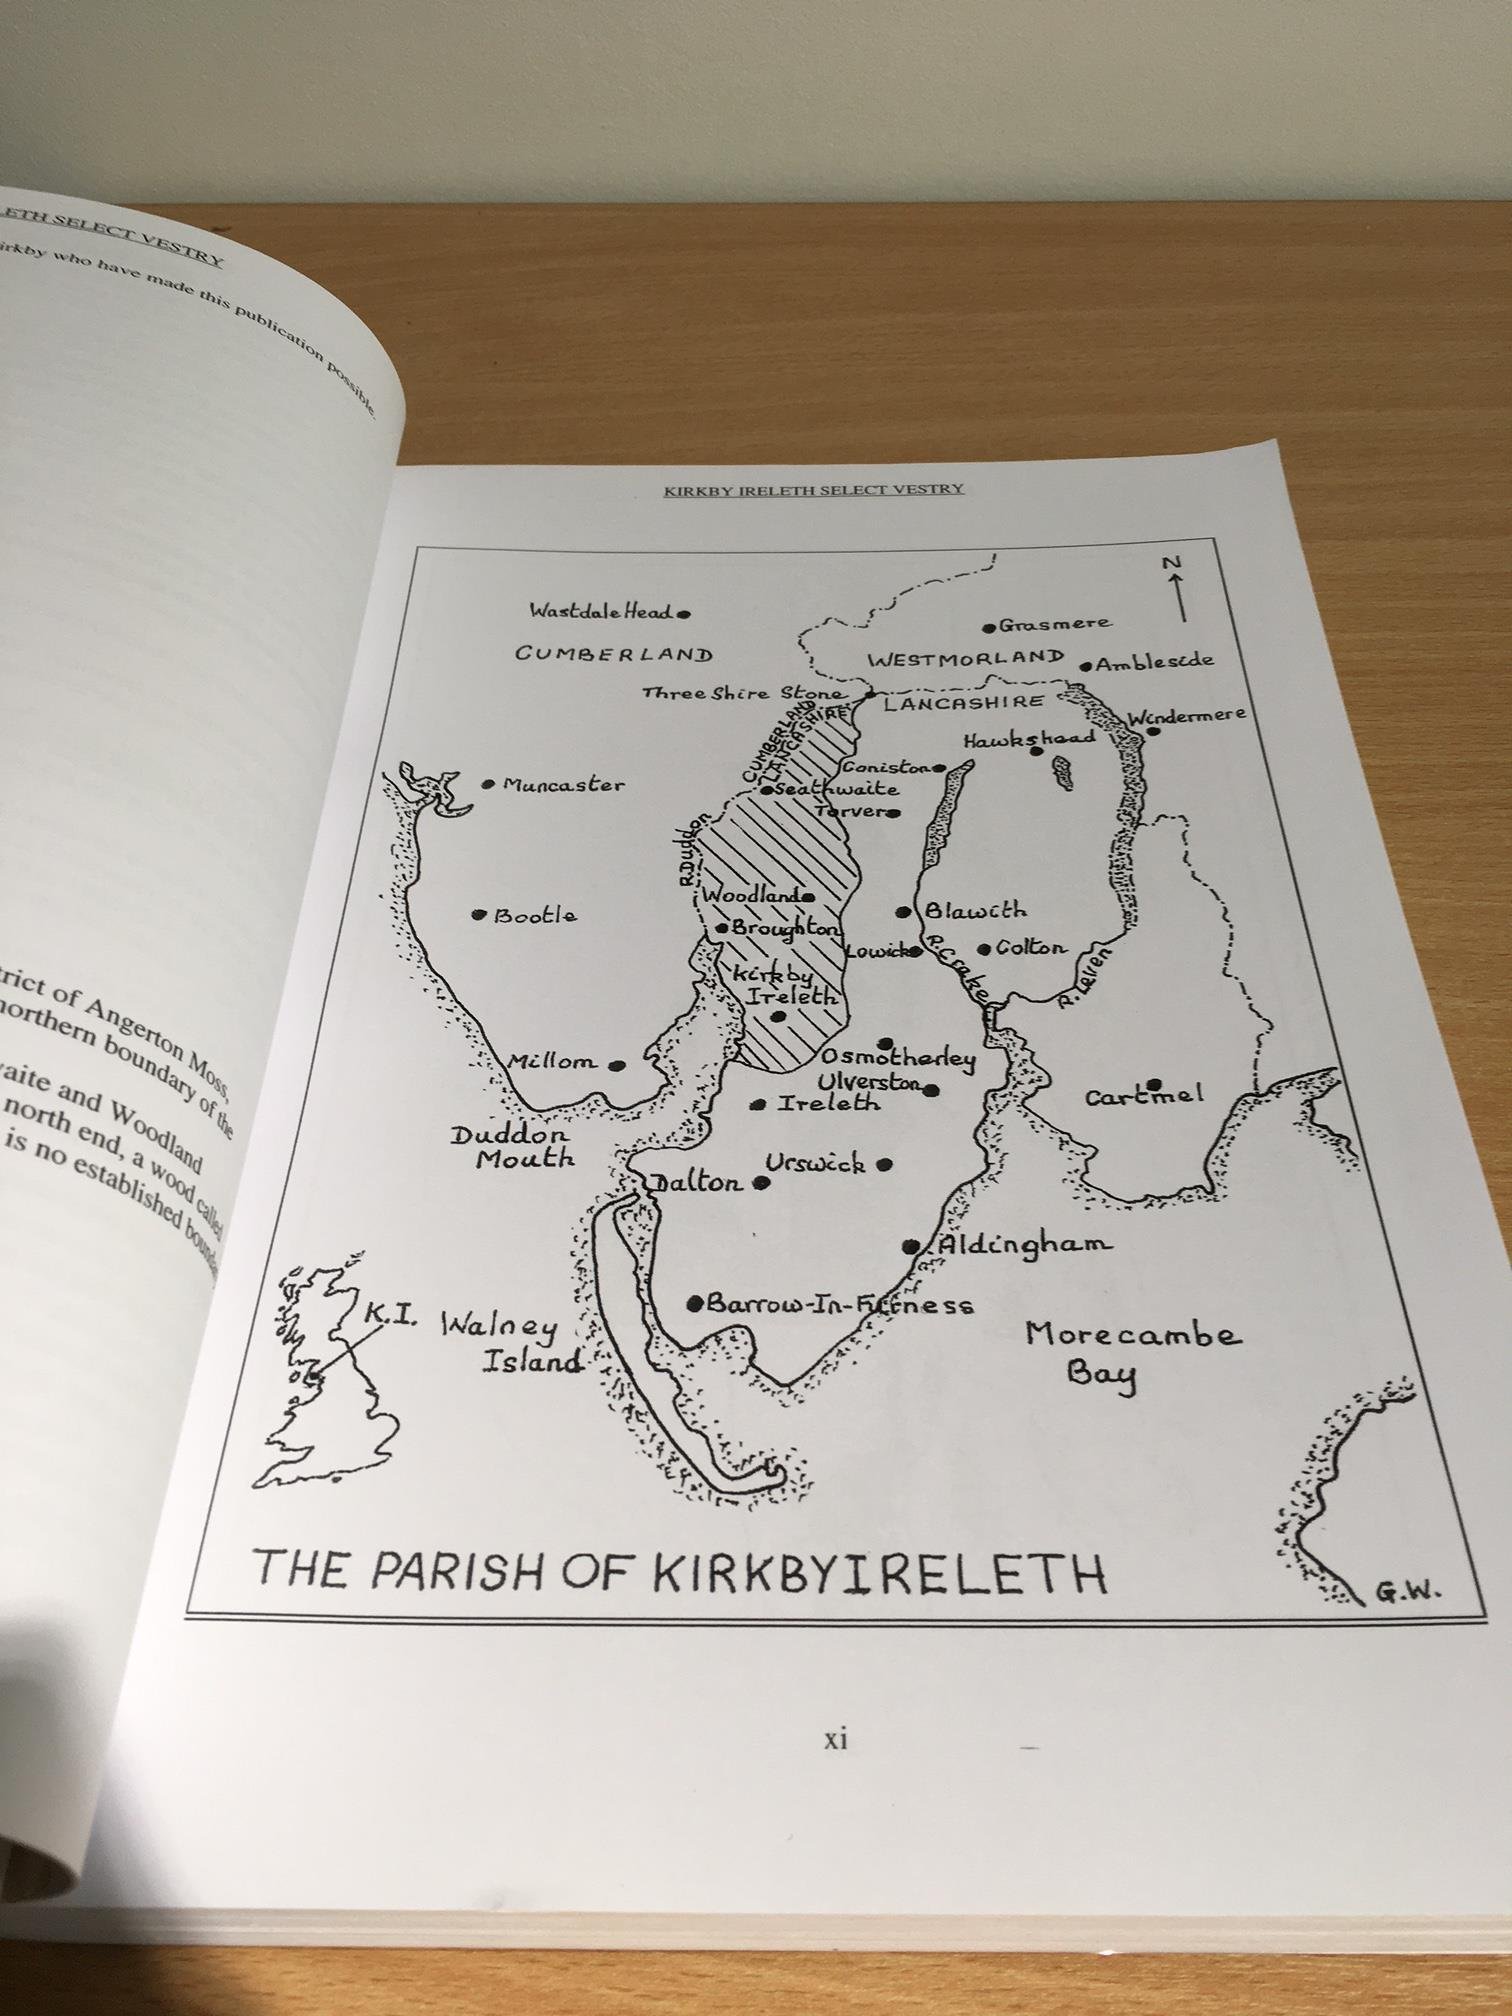 Local interest. Kirkby Select Vestry Book (2004); The Border Regiment in South Africa 1899-1902 from - Image 2 of 2